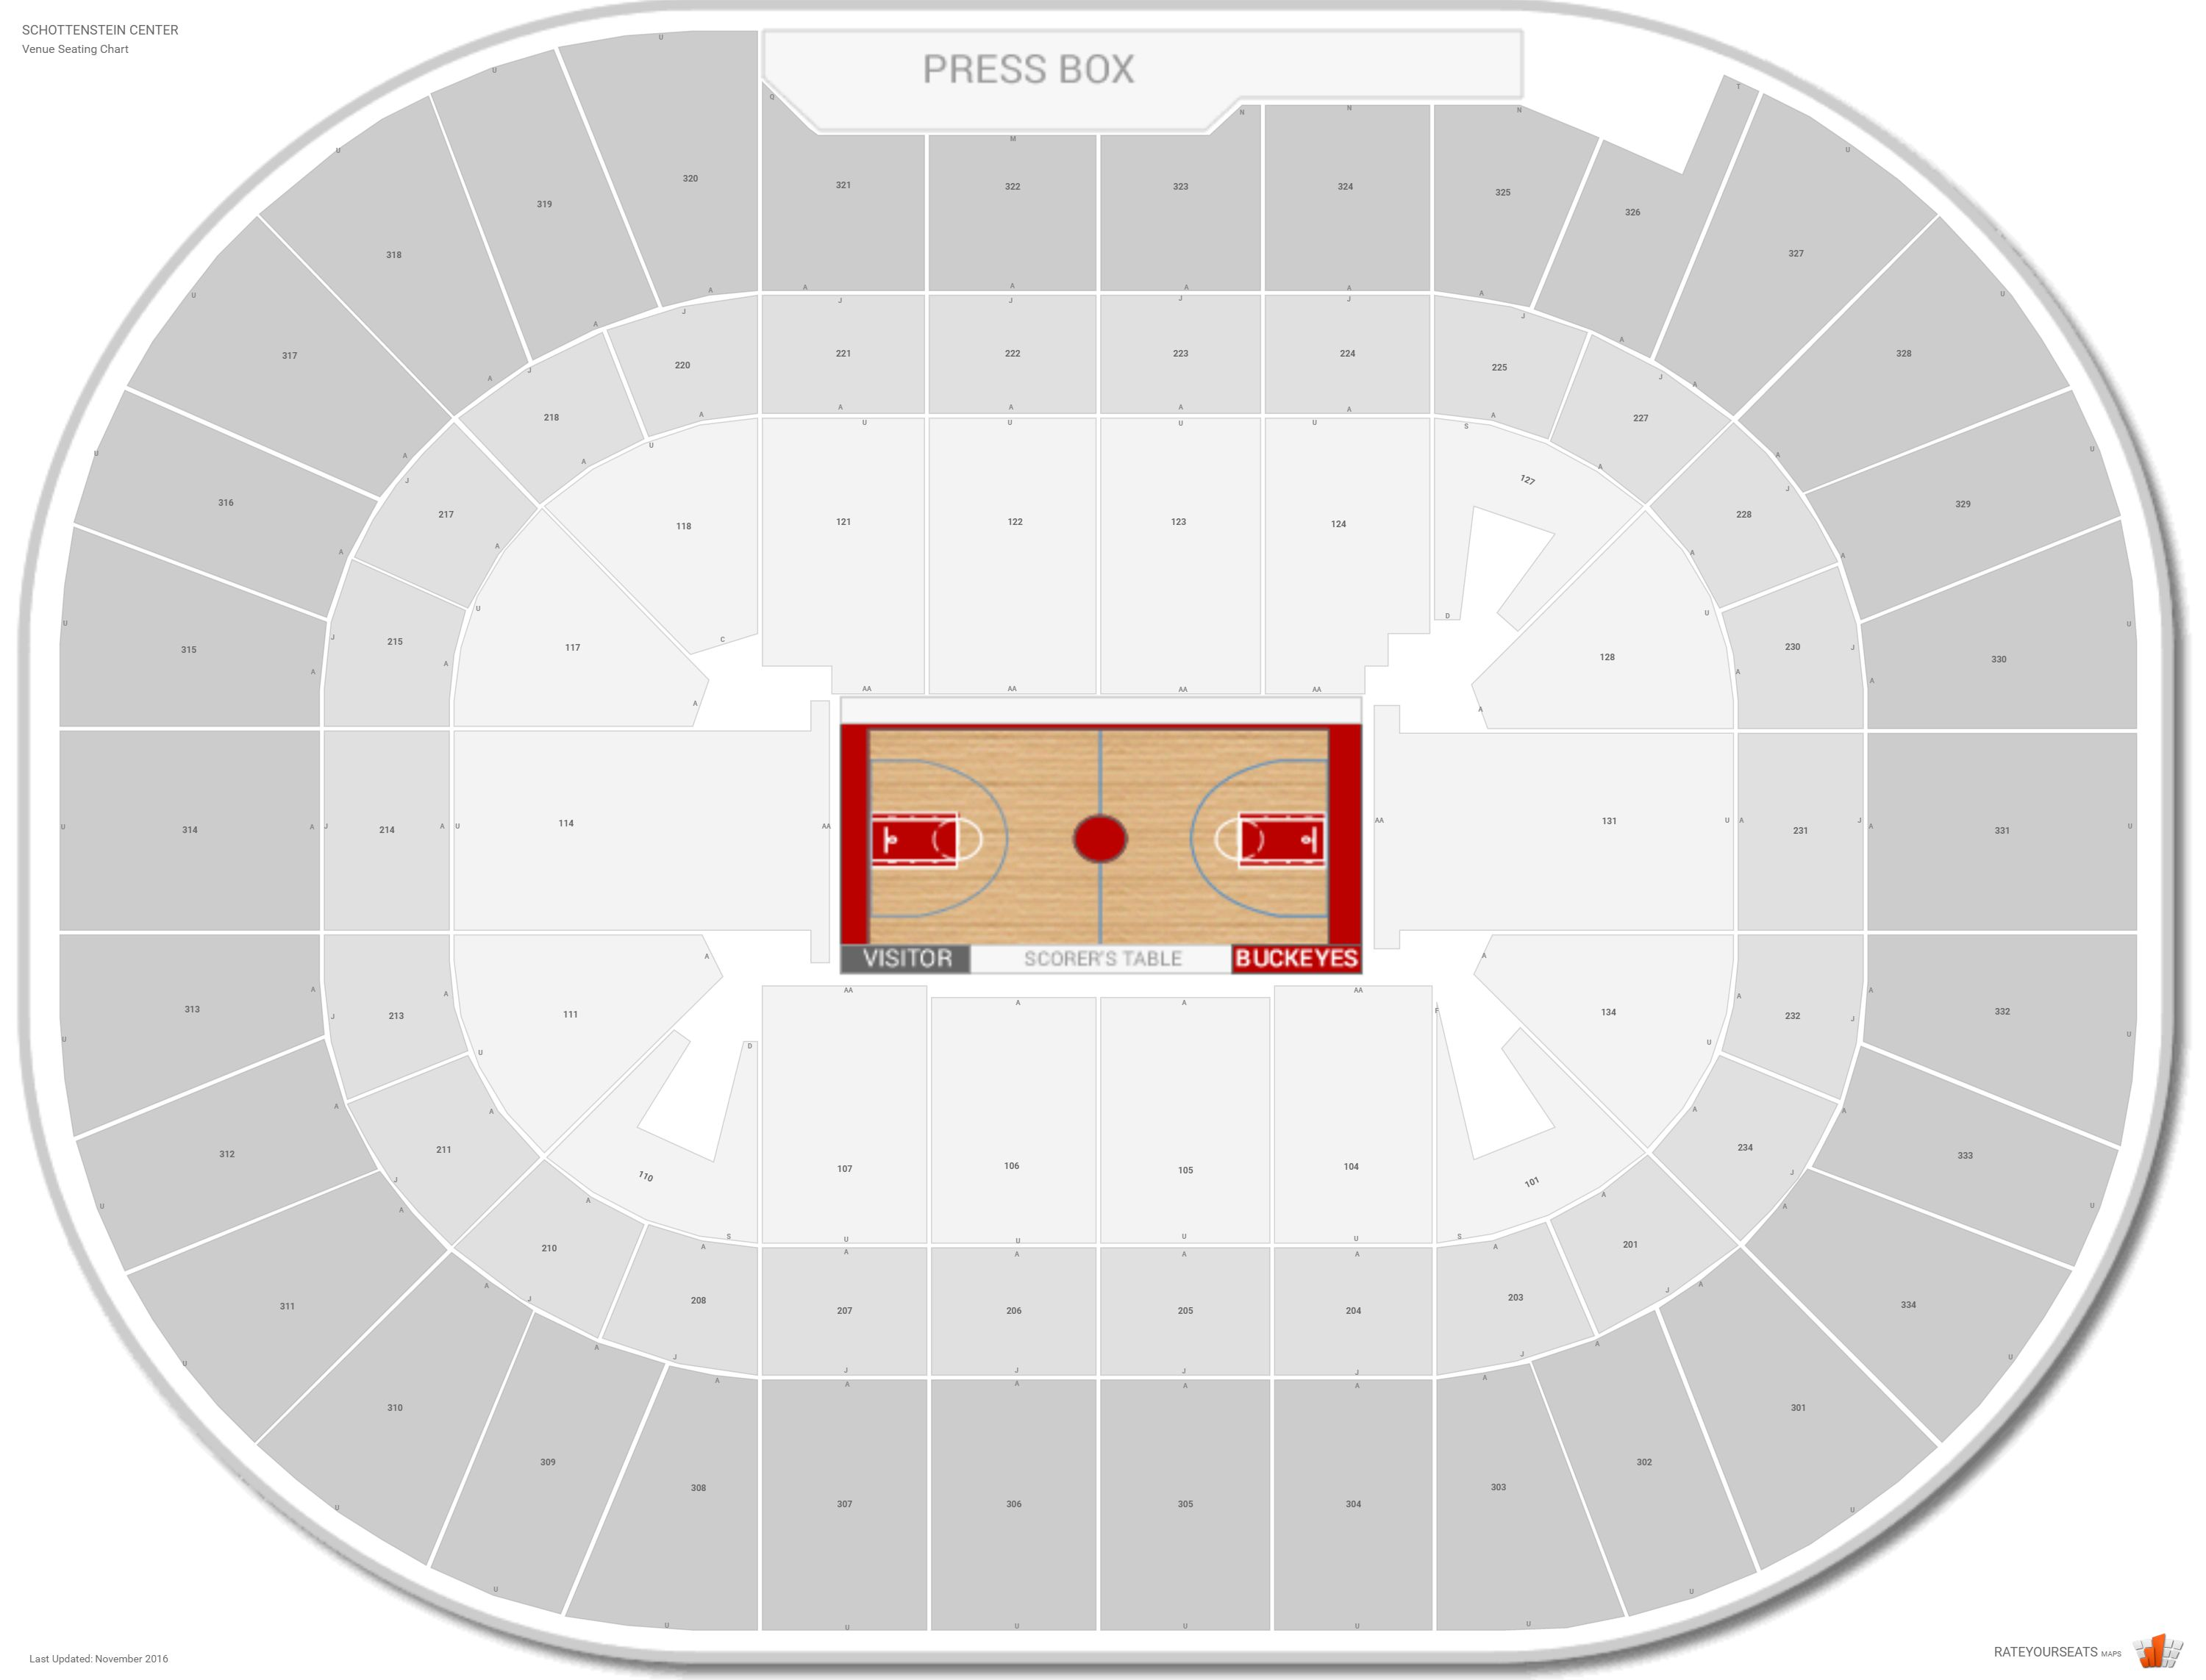 Schottenstein center ohio state seating guide rateyourseats com